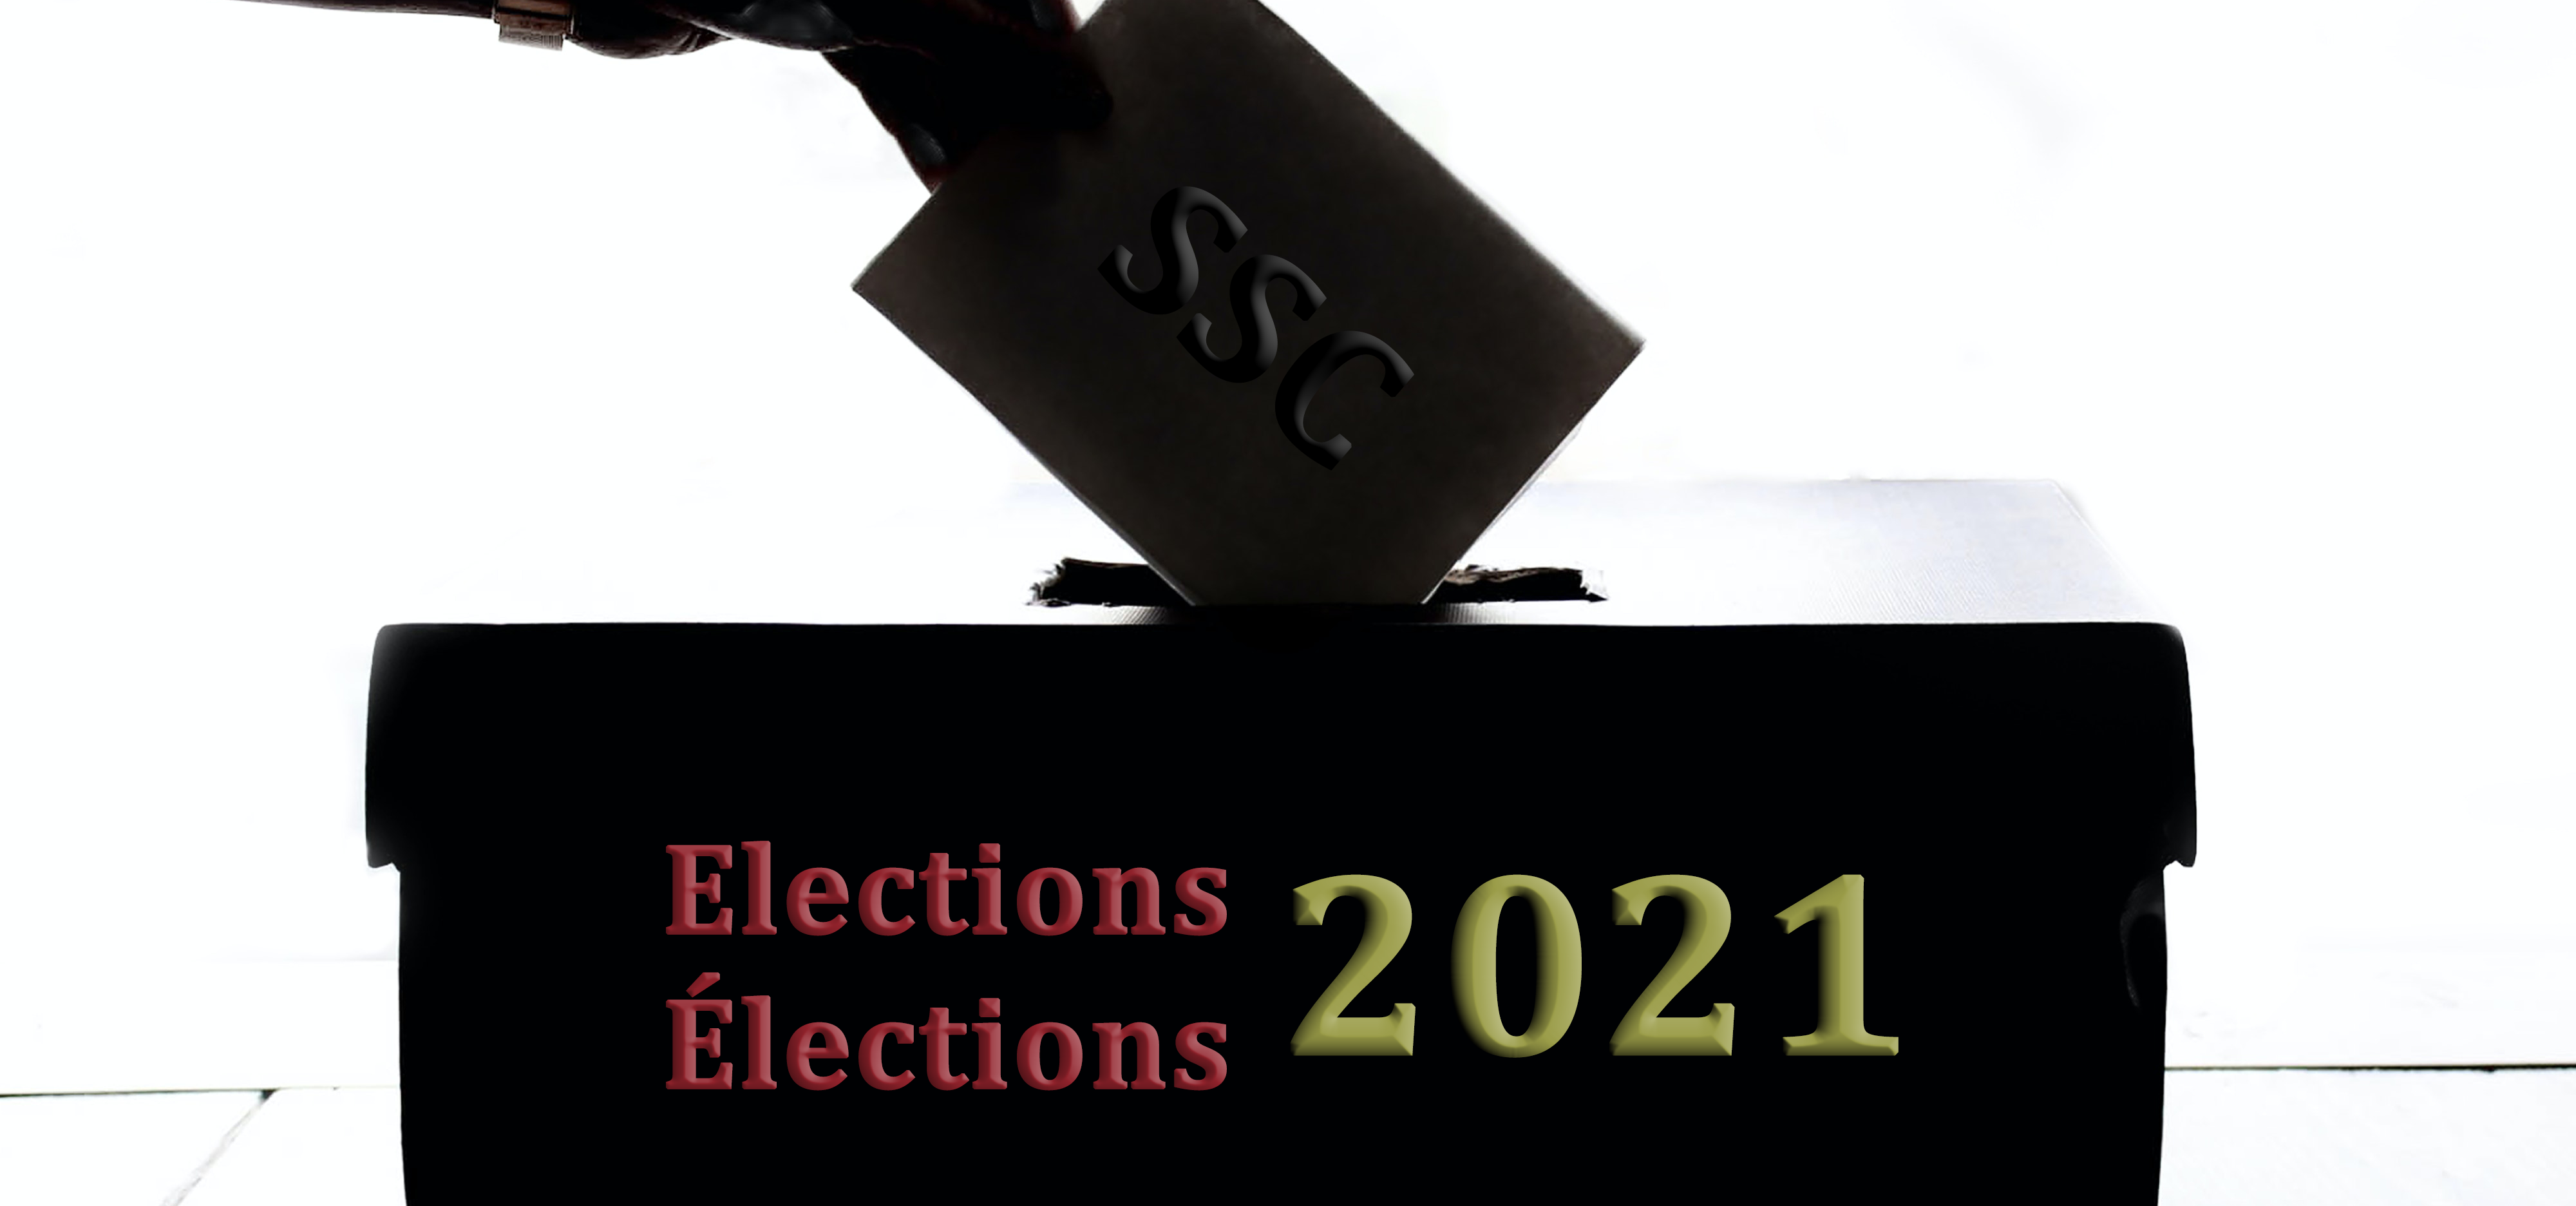 SSC Elections